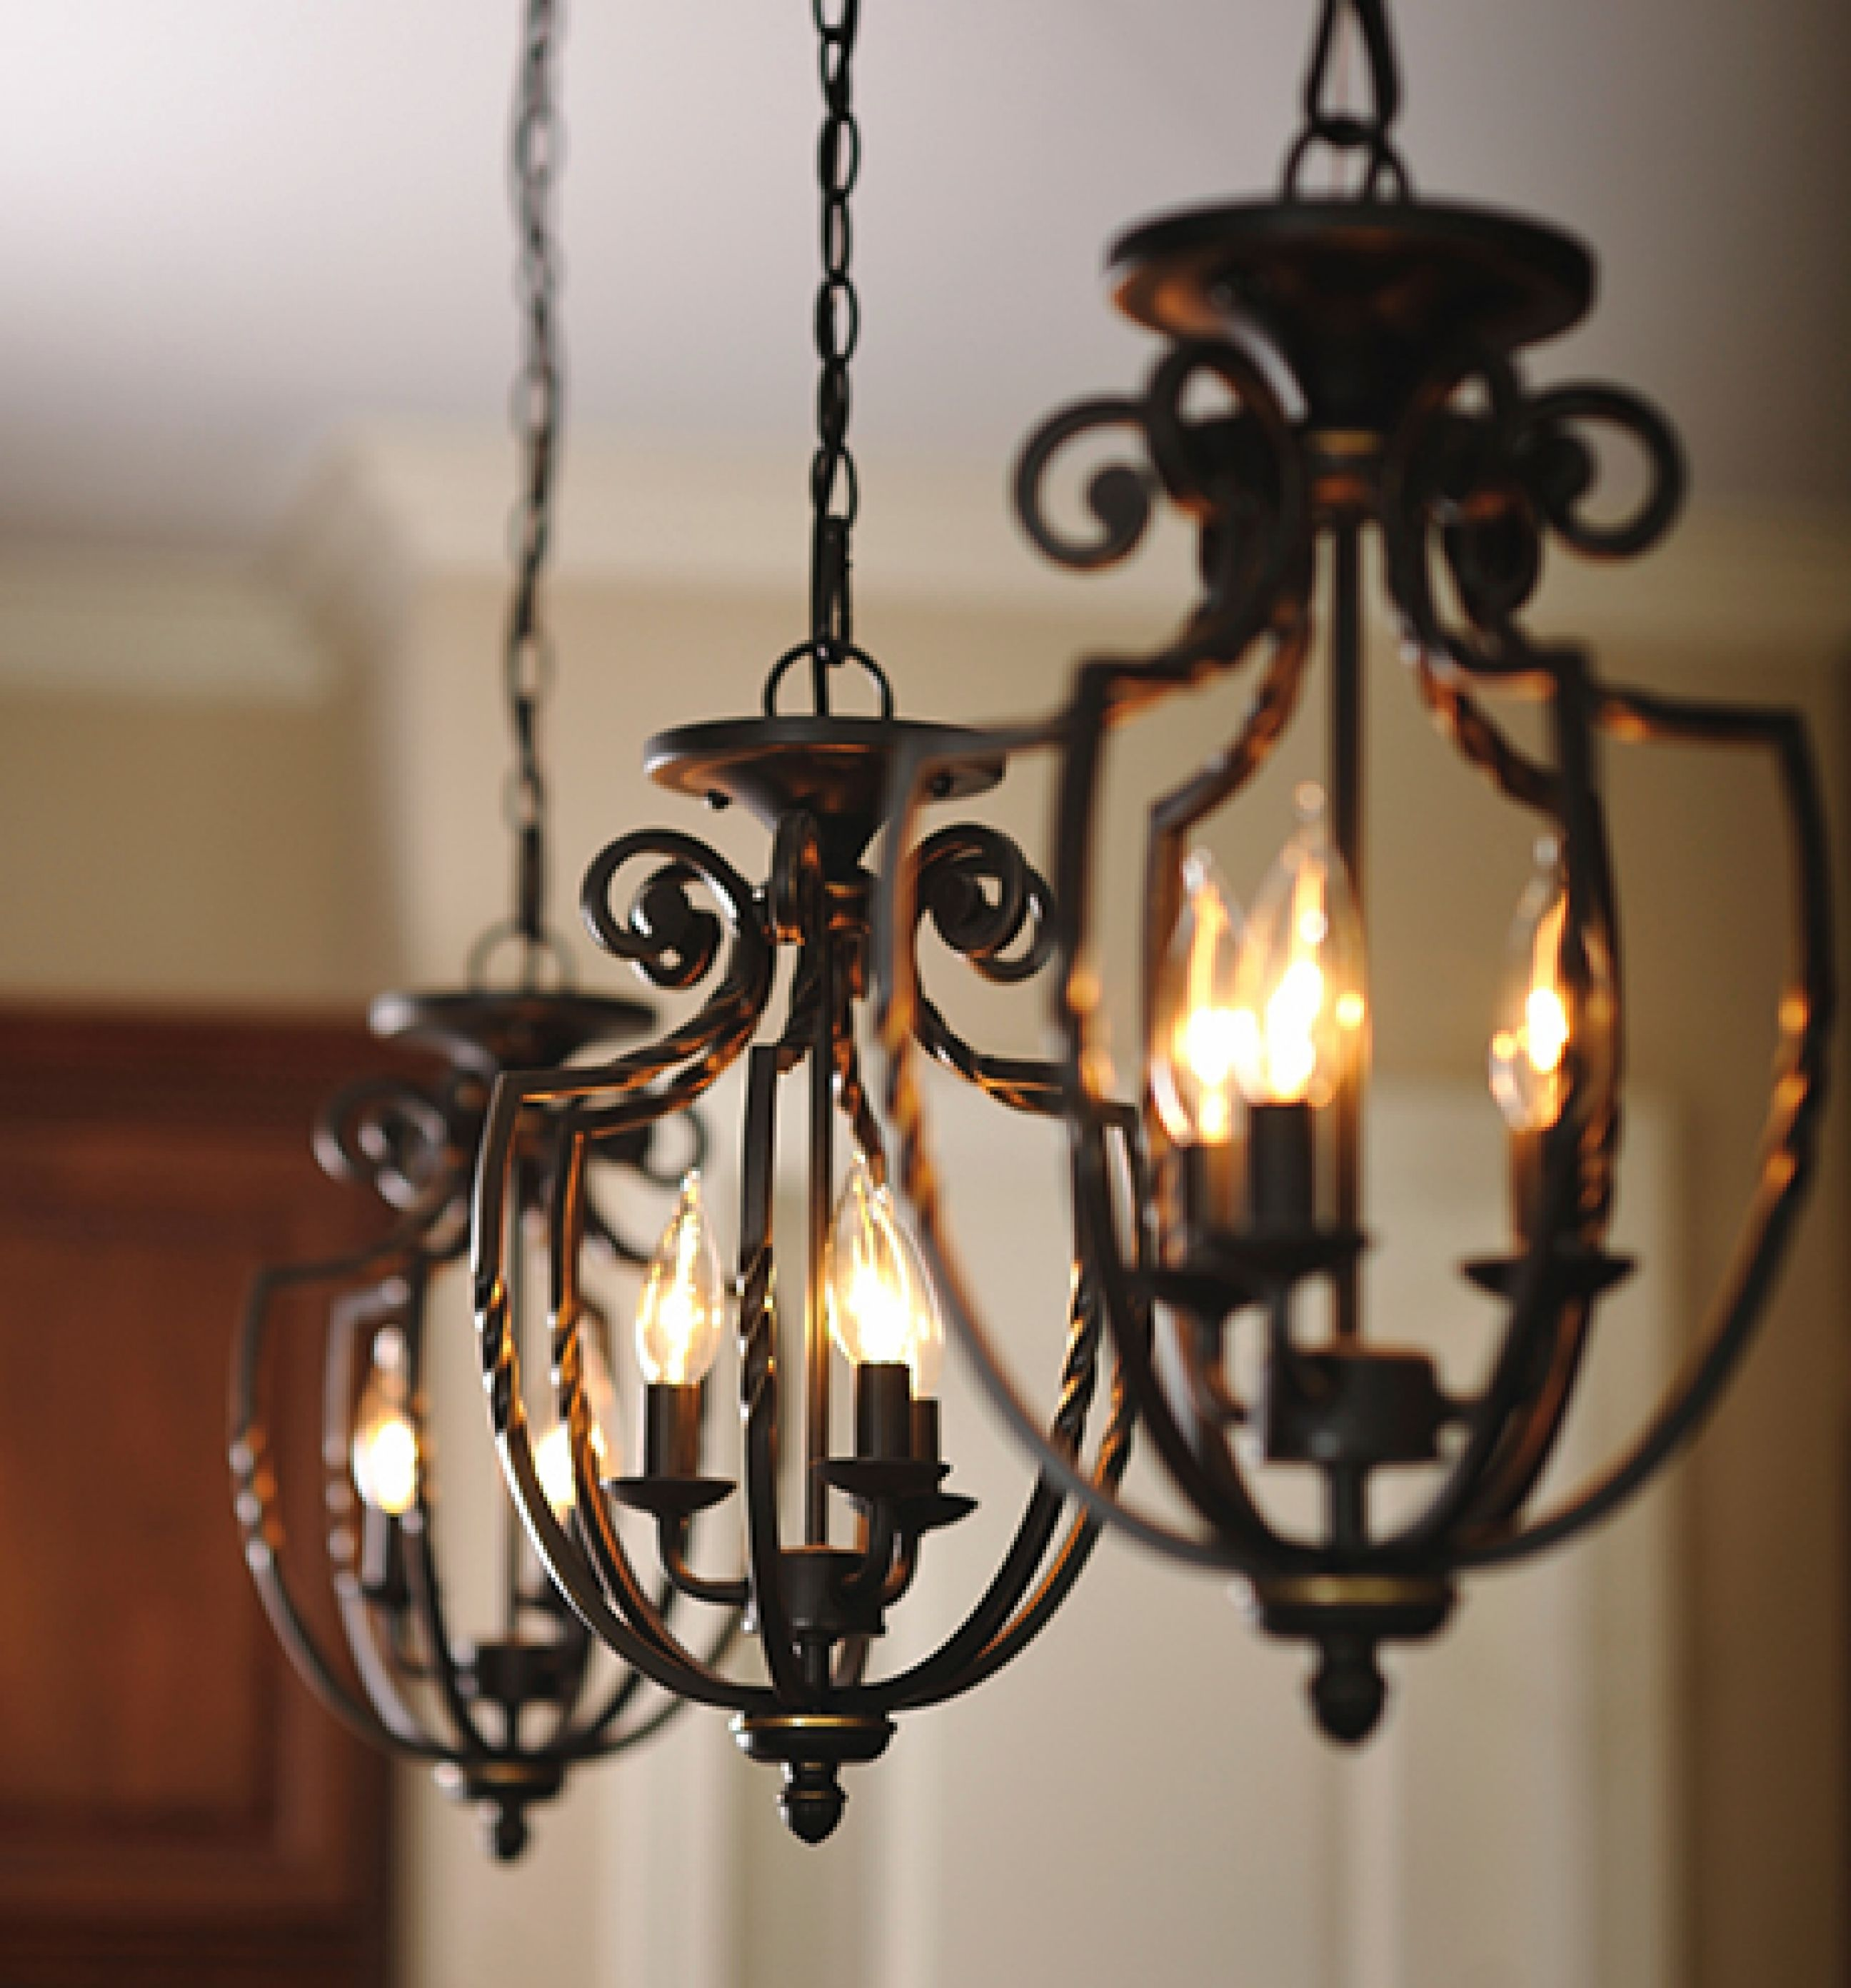 Iron gate fence services in pa black steel fence options in pa 35 lighting ideas and creative fixtures that inspire you to create the perfect ambience in your home arubaitofo Choice Image